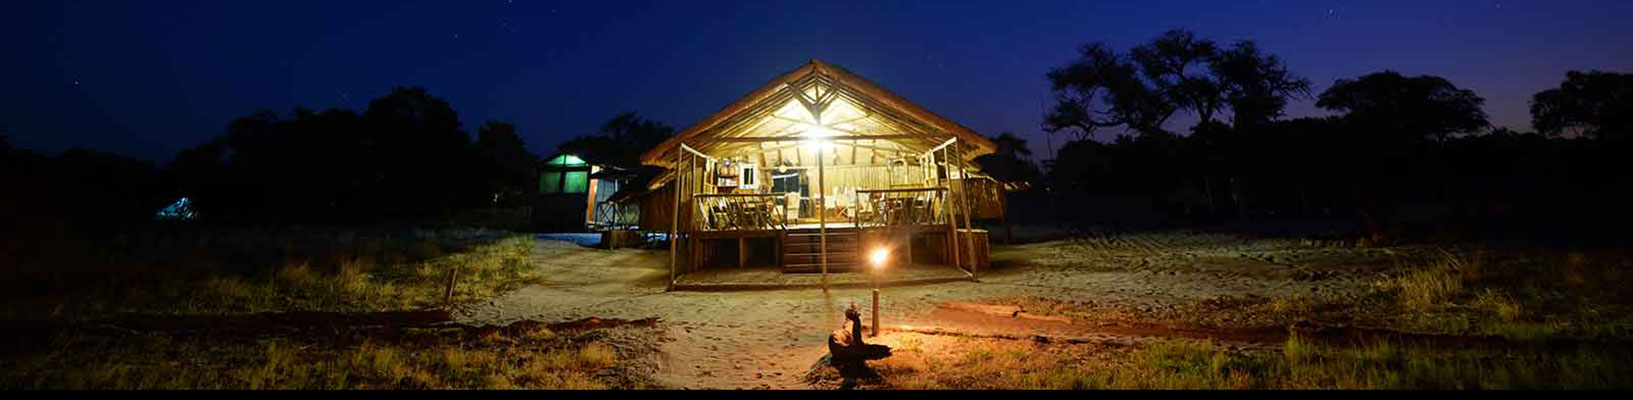 Camp-Savuti-lodge-entrance-pano-night2.jpg